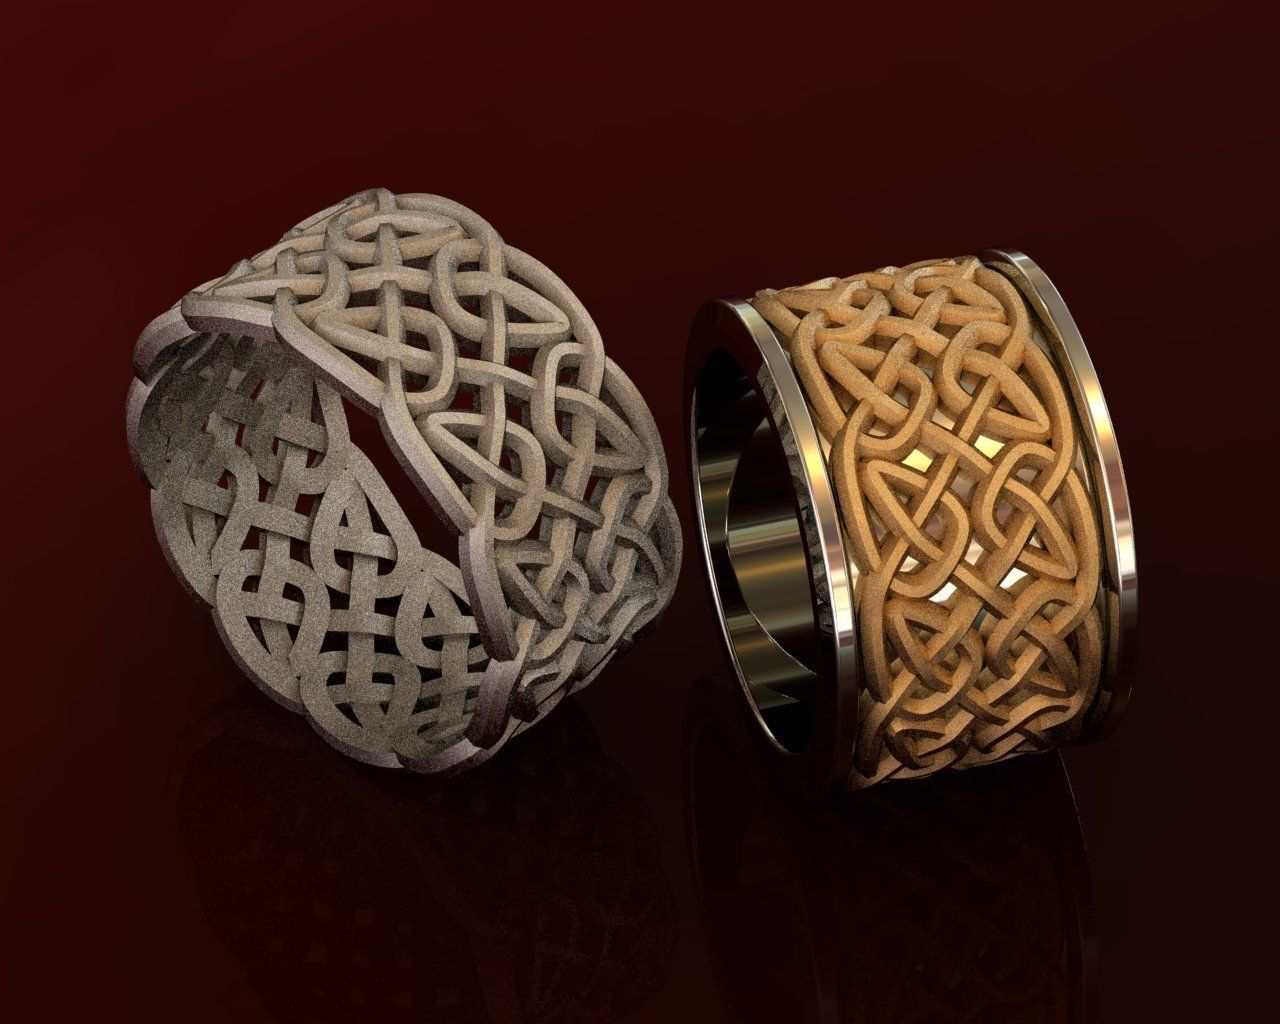 Celtic Wedding Rings with Knot